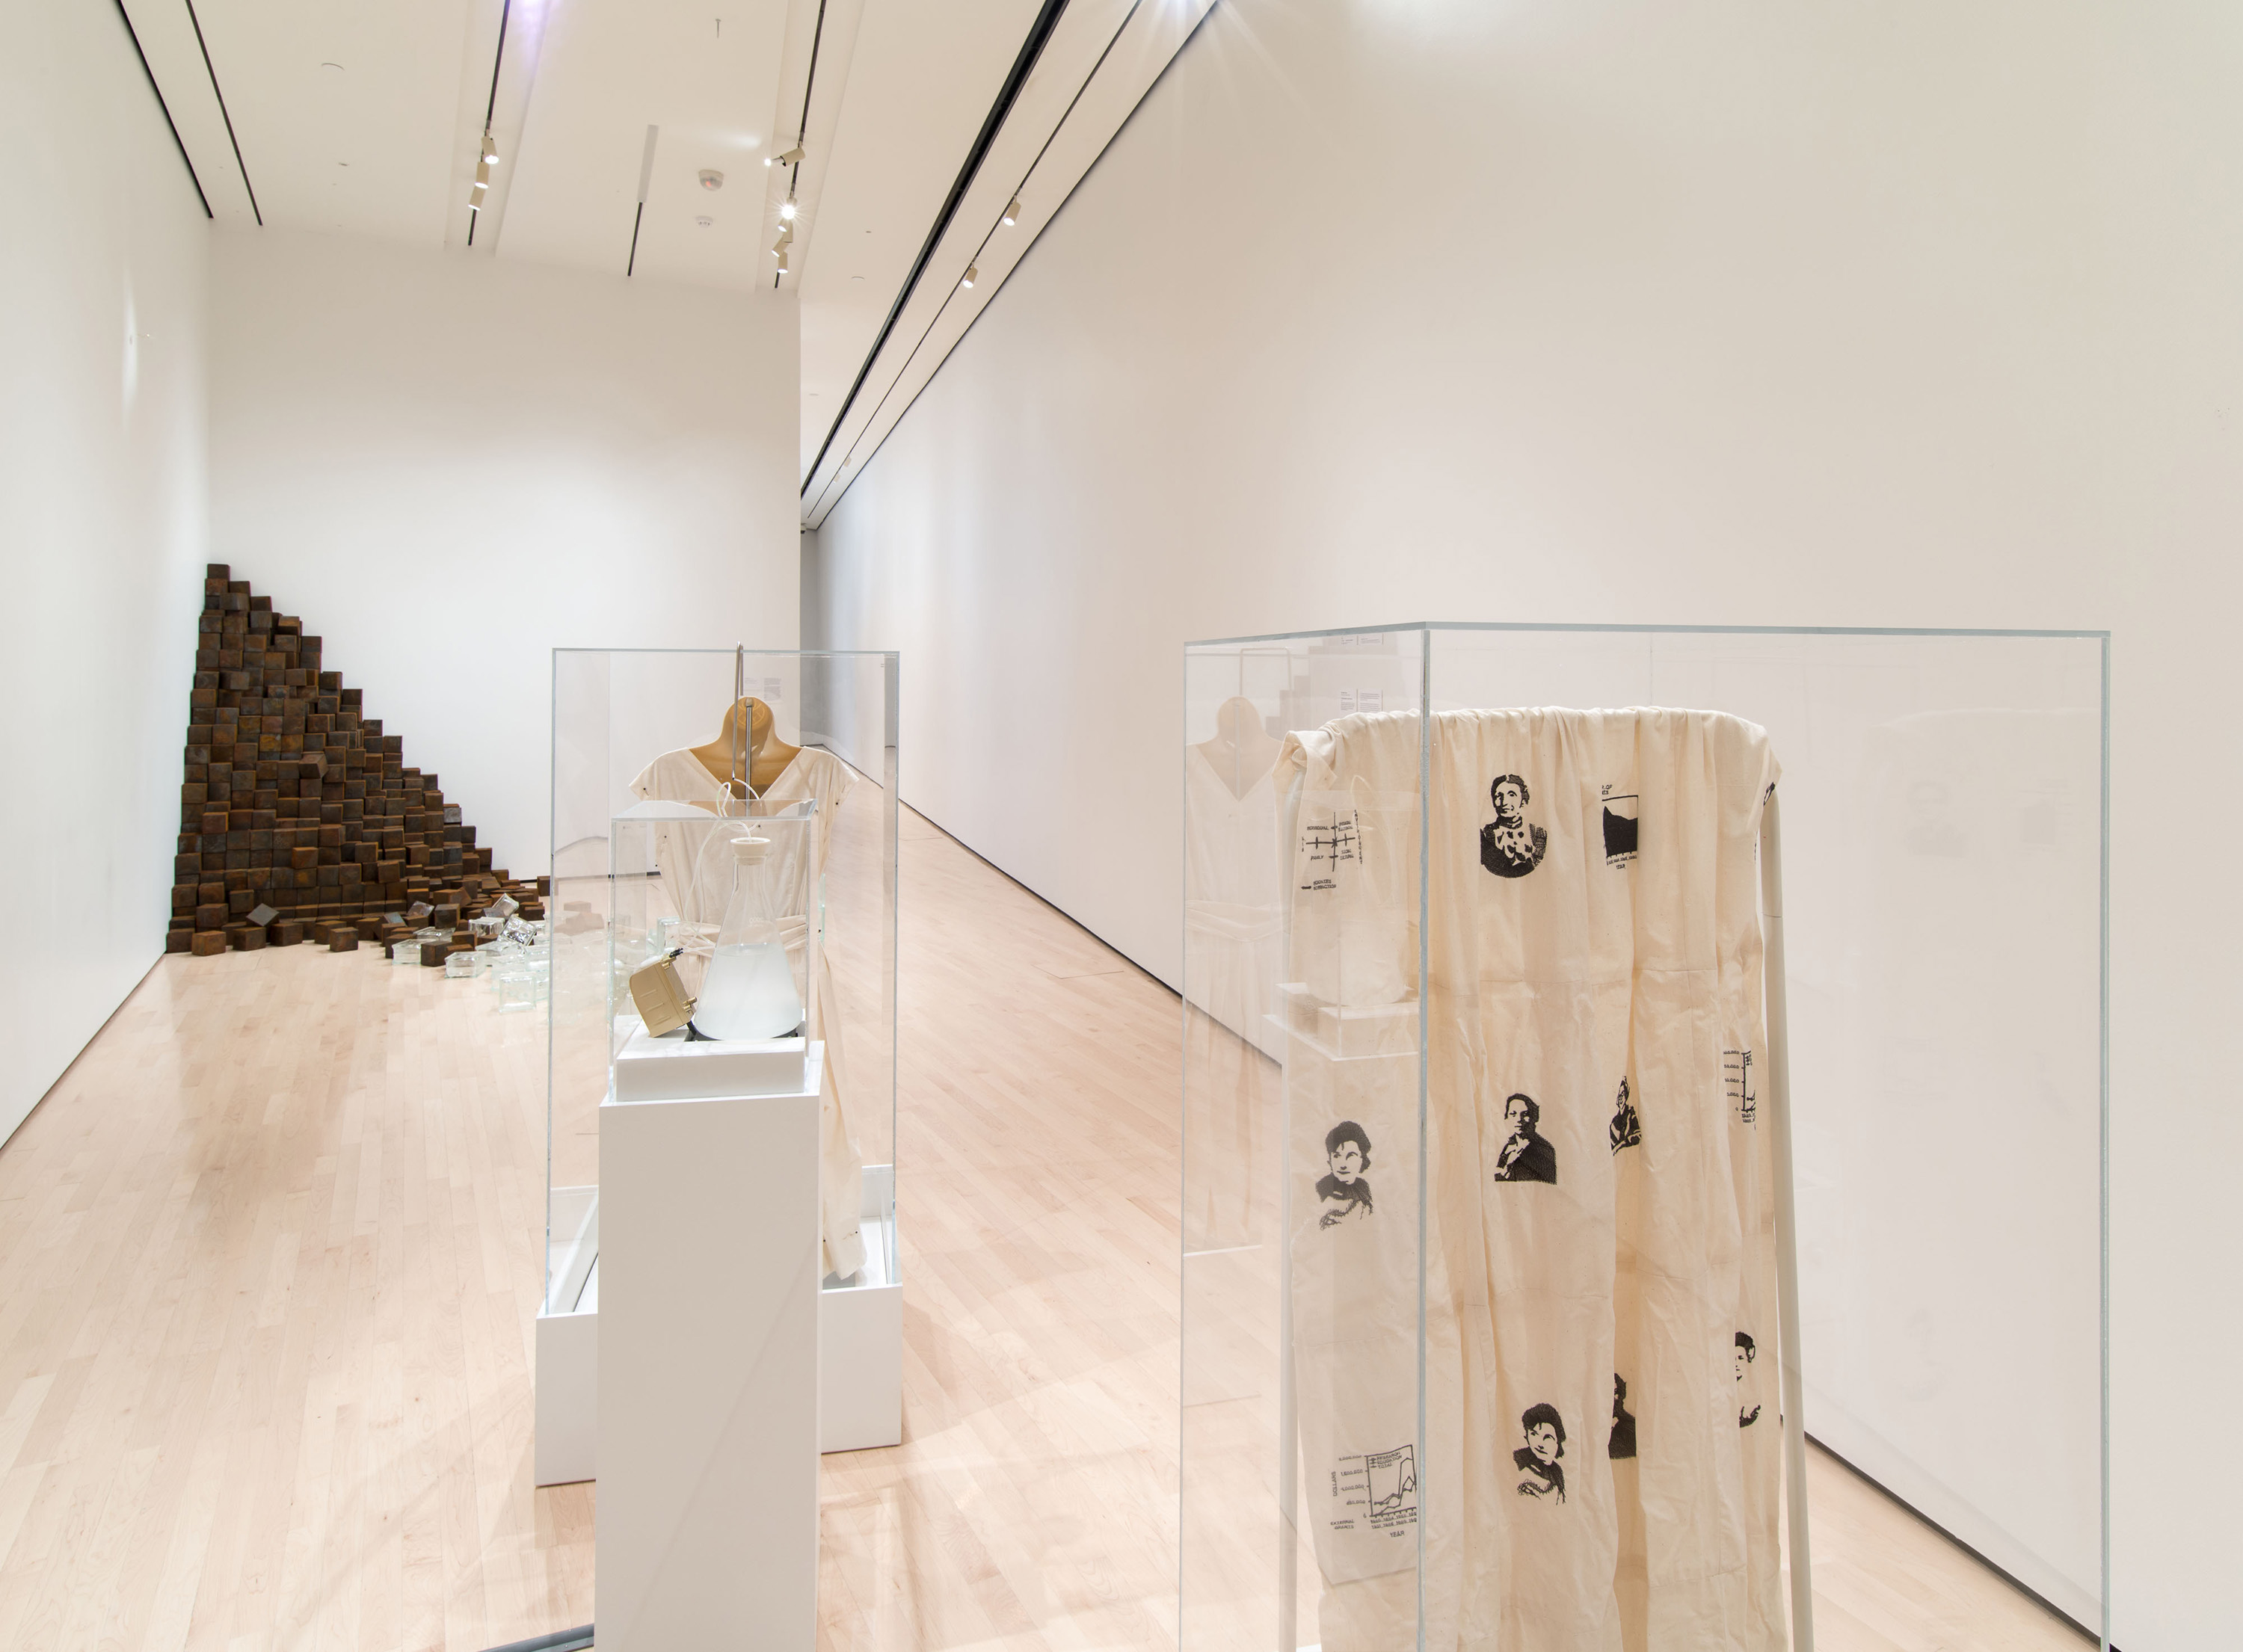 2015 Master of Fine Arts Exhibition, installation view at the Eli and Edythe Broad Art Museum at Michigan State University, 2015. Photo: Alex Nichols